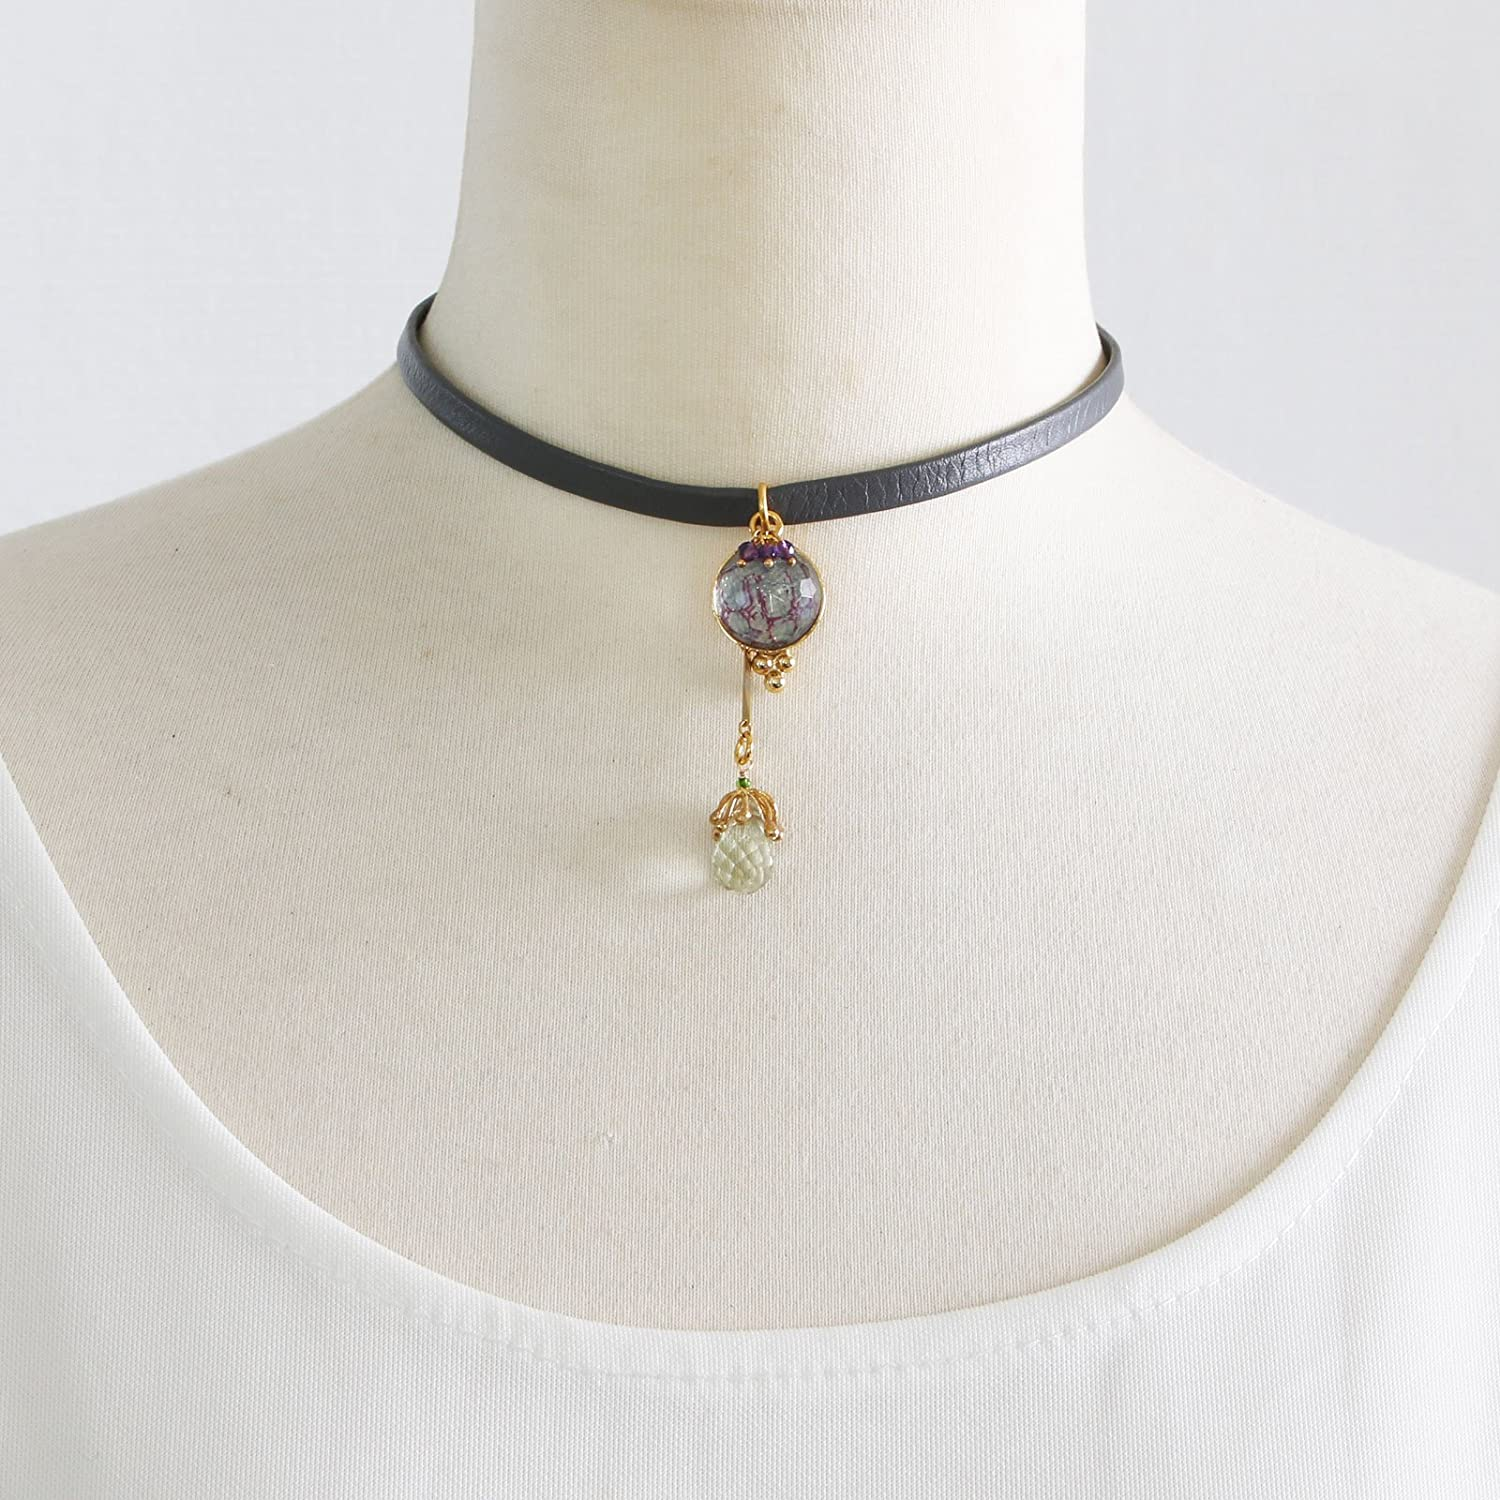 Tamarusan Leather Strap Choker Amethyst Water Surface Blue Purple Unisex